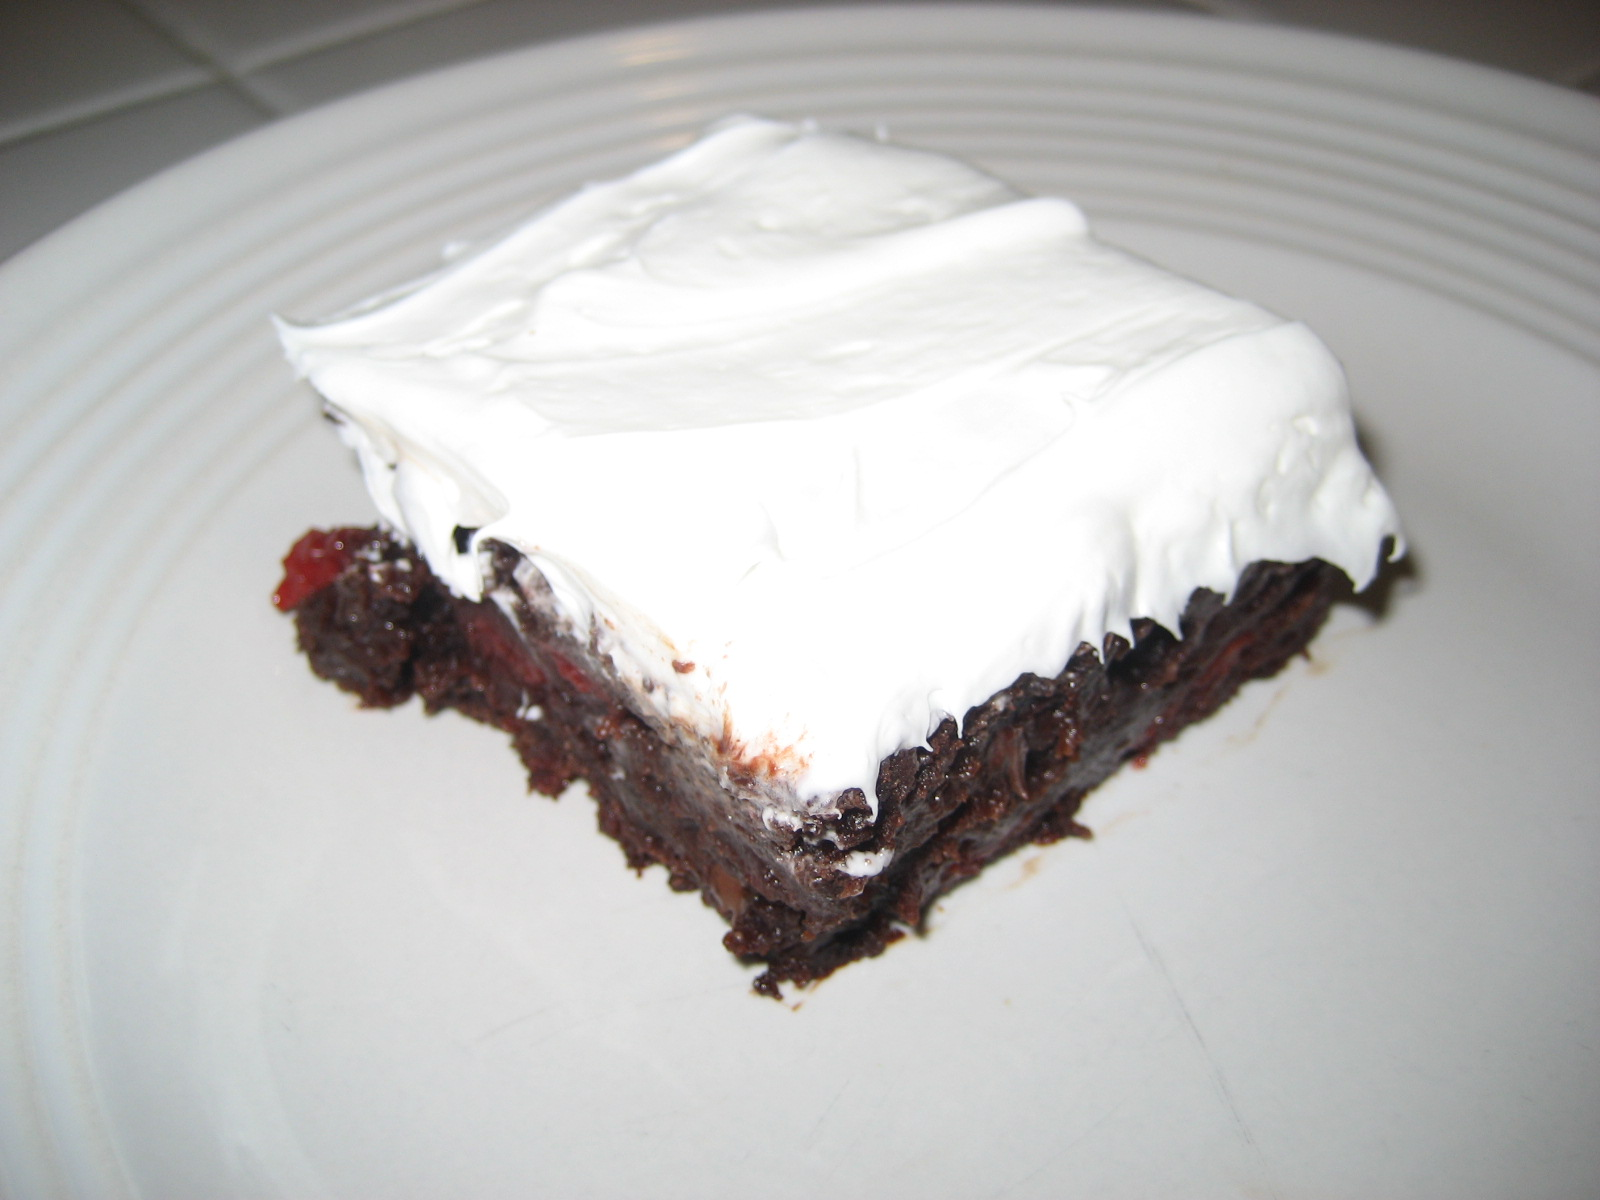 http://heckfridays.blogspot.com/2011/10/chocolate-covered-cherry-brownies.html